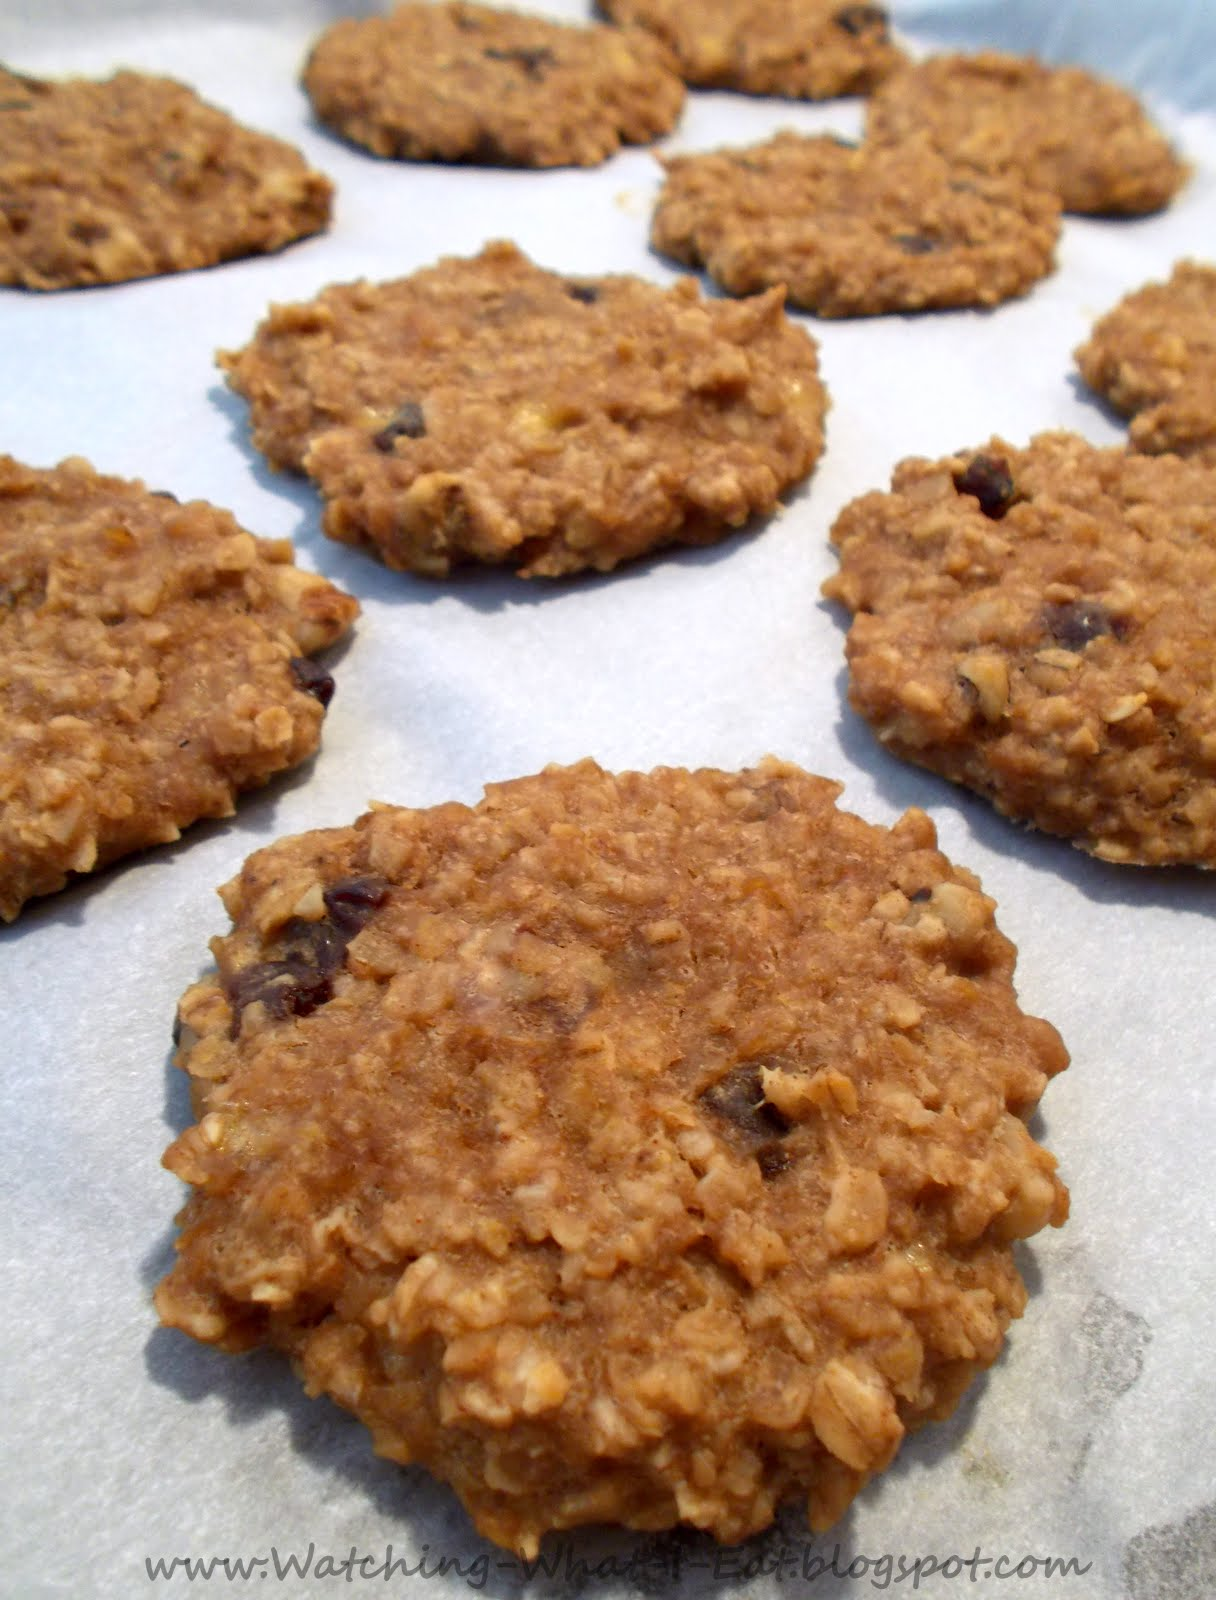 ... Eat: Judy's Ultimate ~ Peanut Butter Oatmeal Breakfast Cookies